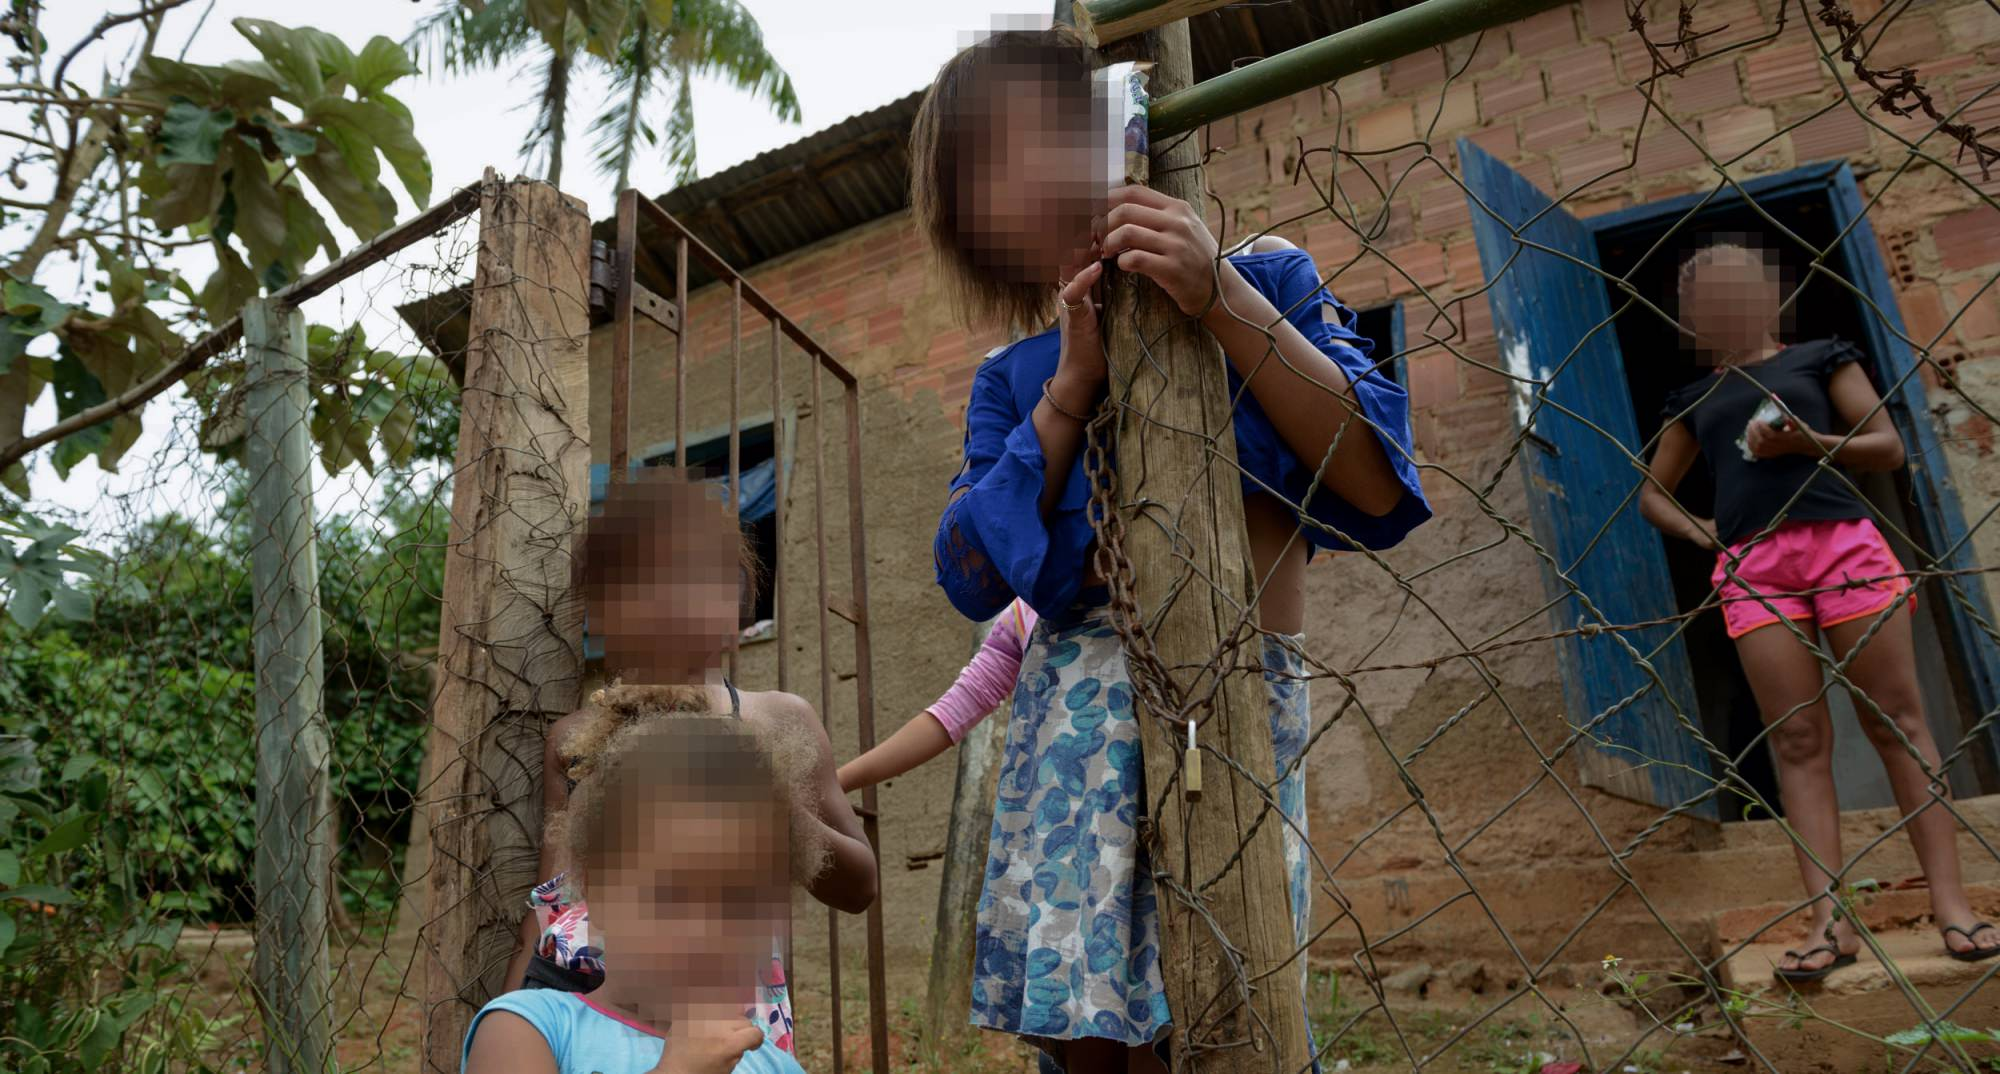 The Infamous Road in Brazil Where 9-Year-Olds Are Sex Trafficked (PHOTOS)